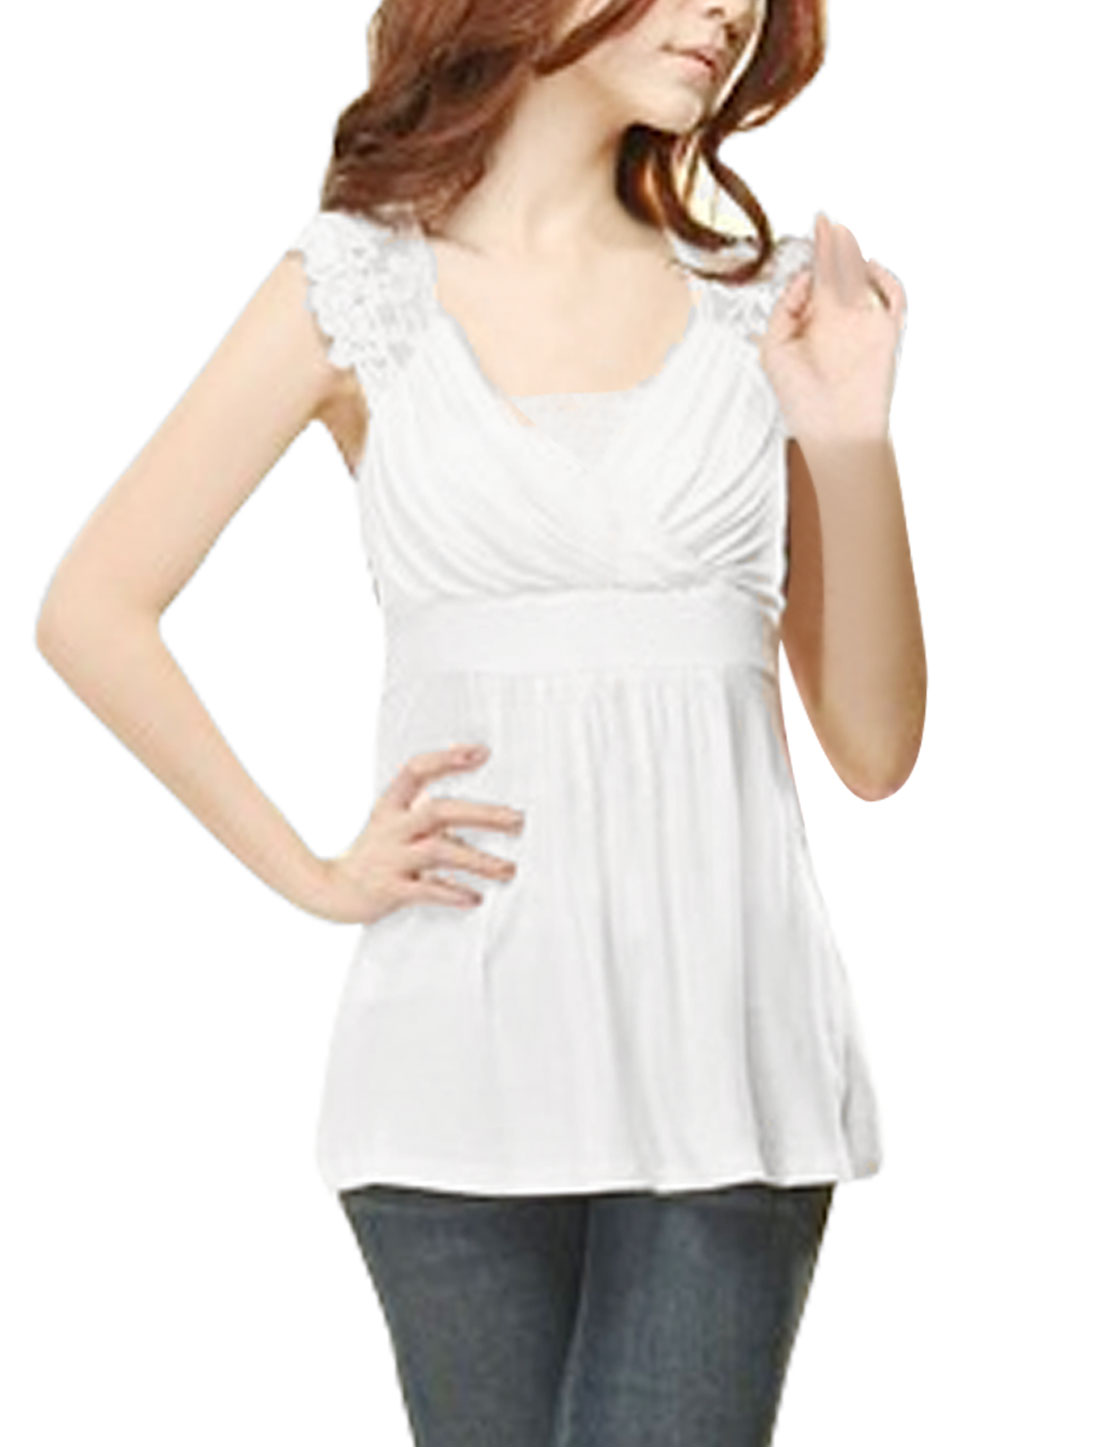 Women White Cross V Neck Sleeveless Sheer Back Lace Shoulder Shirt XS